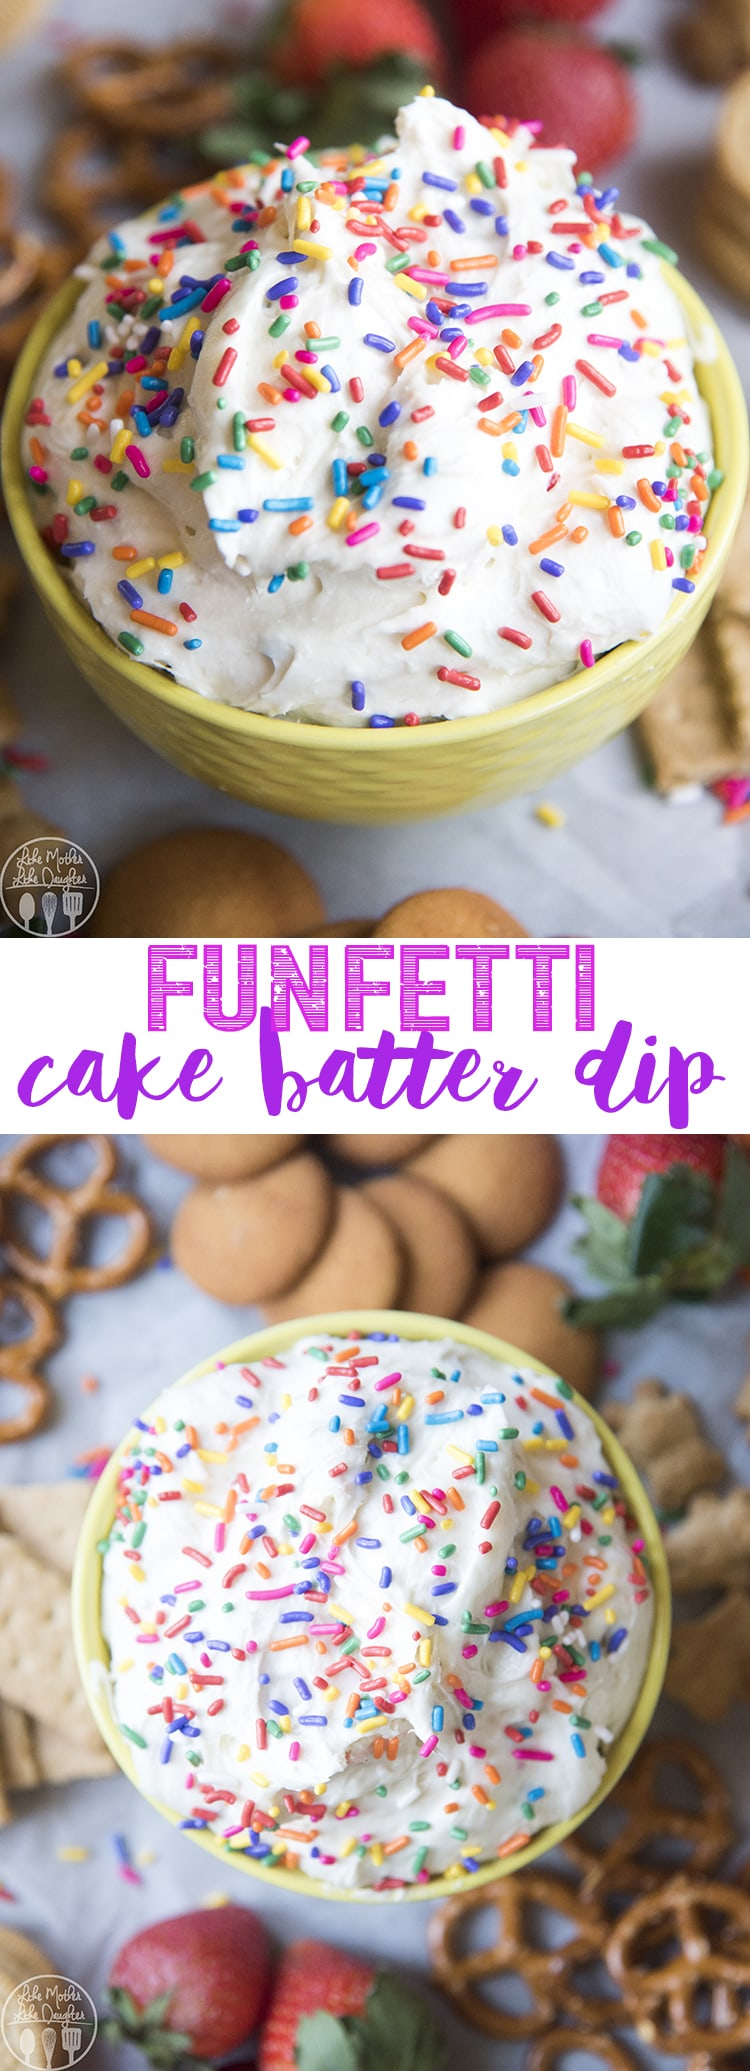 This Funfetti Dip is an amazing 4 ingredient dip that is perfect for a party! This dip has the great taste of cake batter and is perfect with pretzels, cookies, or fruit.